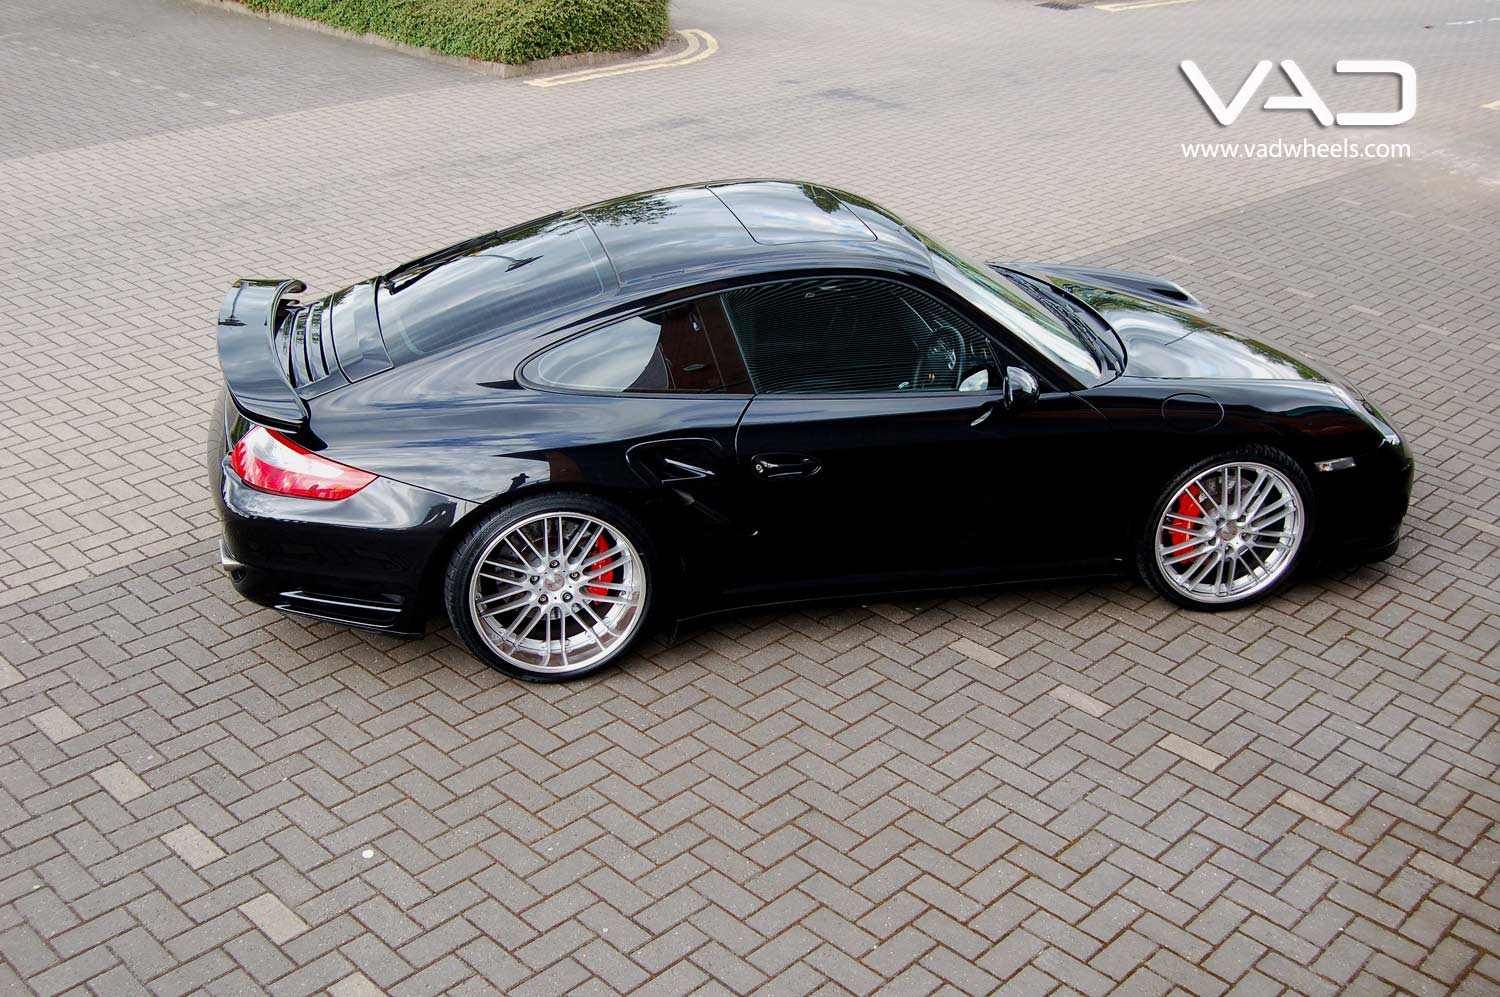 Porsche-997-Turbo-Fitted-With-20''-Trafficstar-RTM-Silver